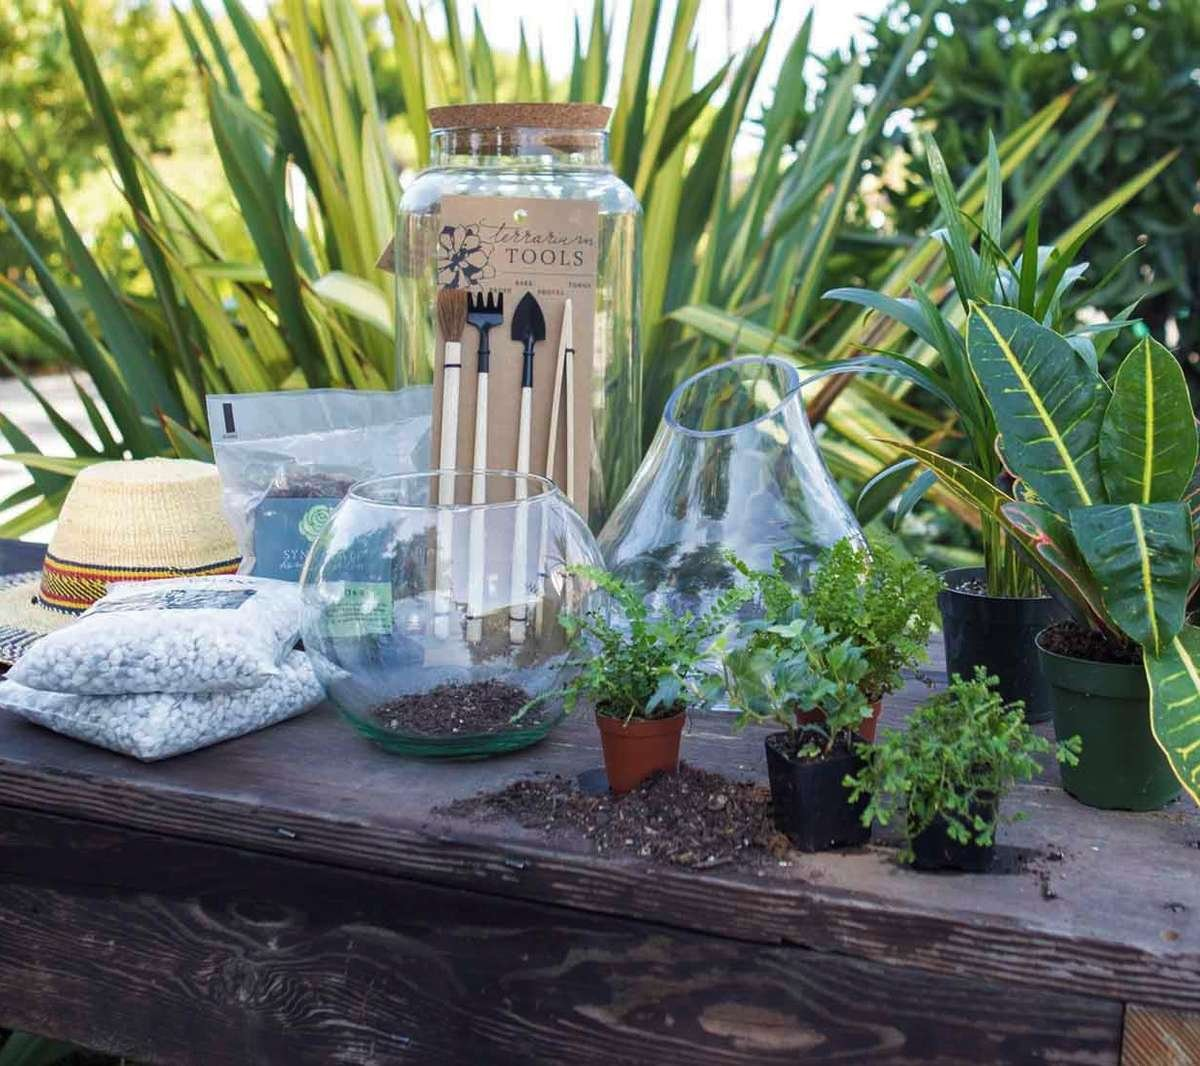 Terrarium supplies on table